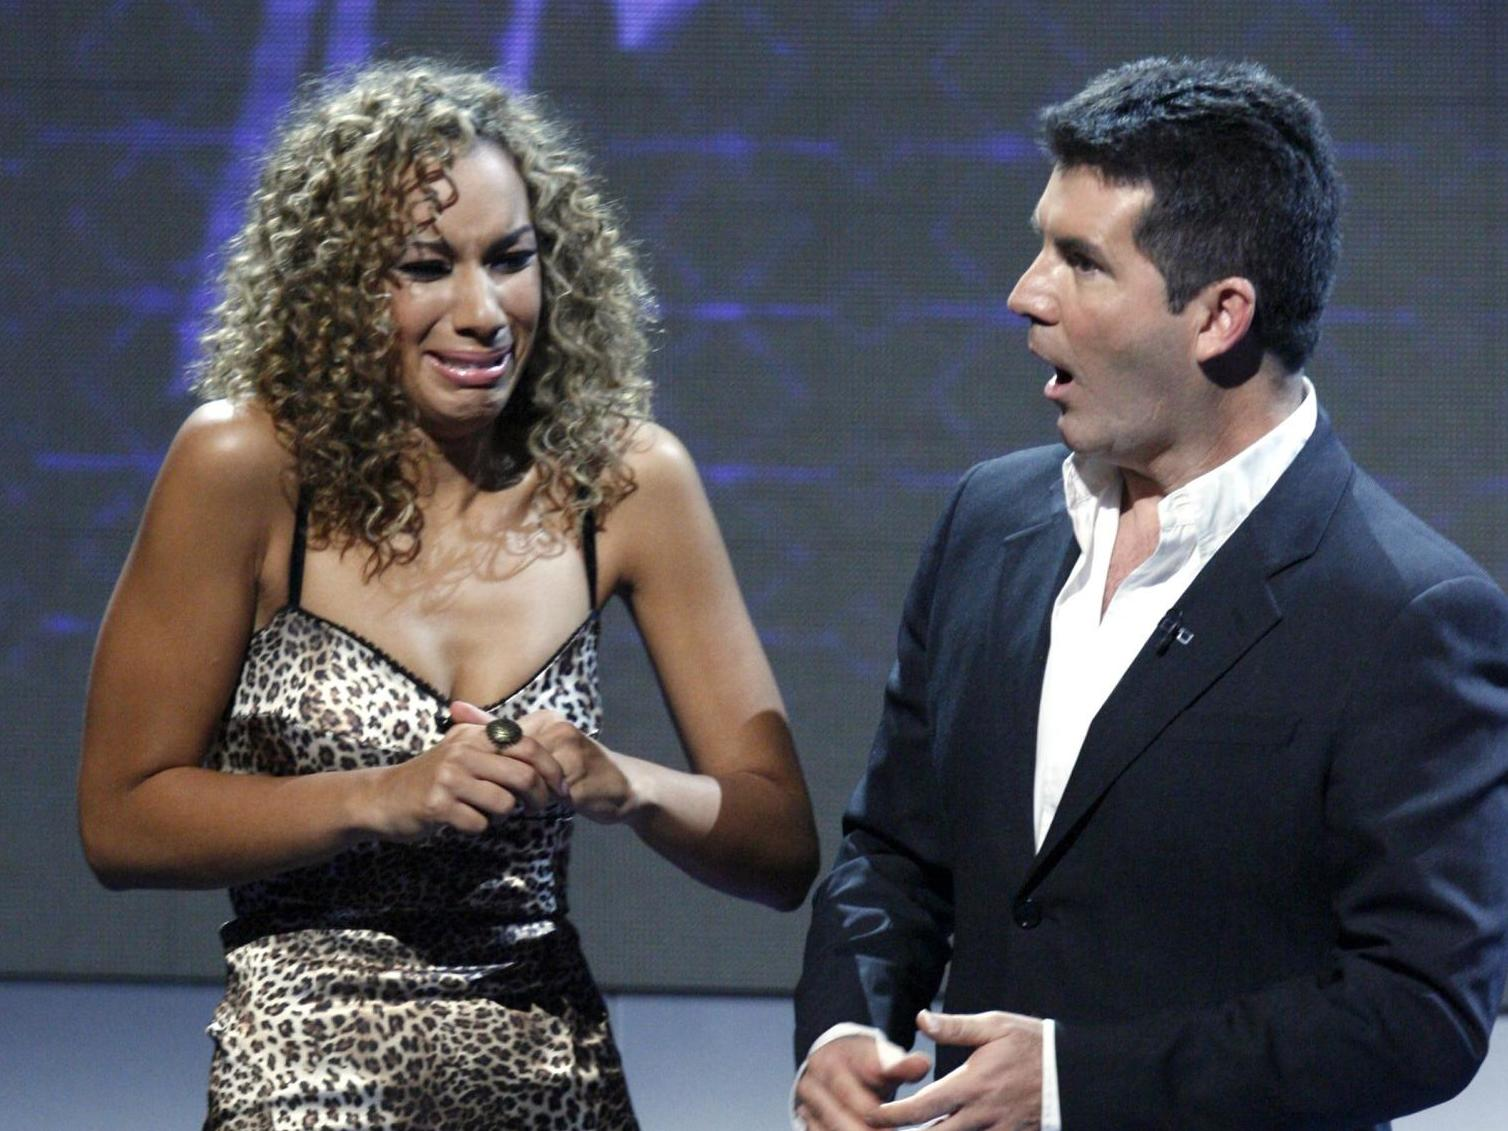 The rise and fall of The X Factor: Why it's time to put Simon Cowell's 'televised karaoke' out to pasture